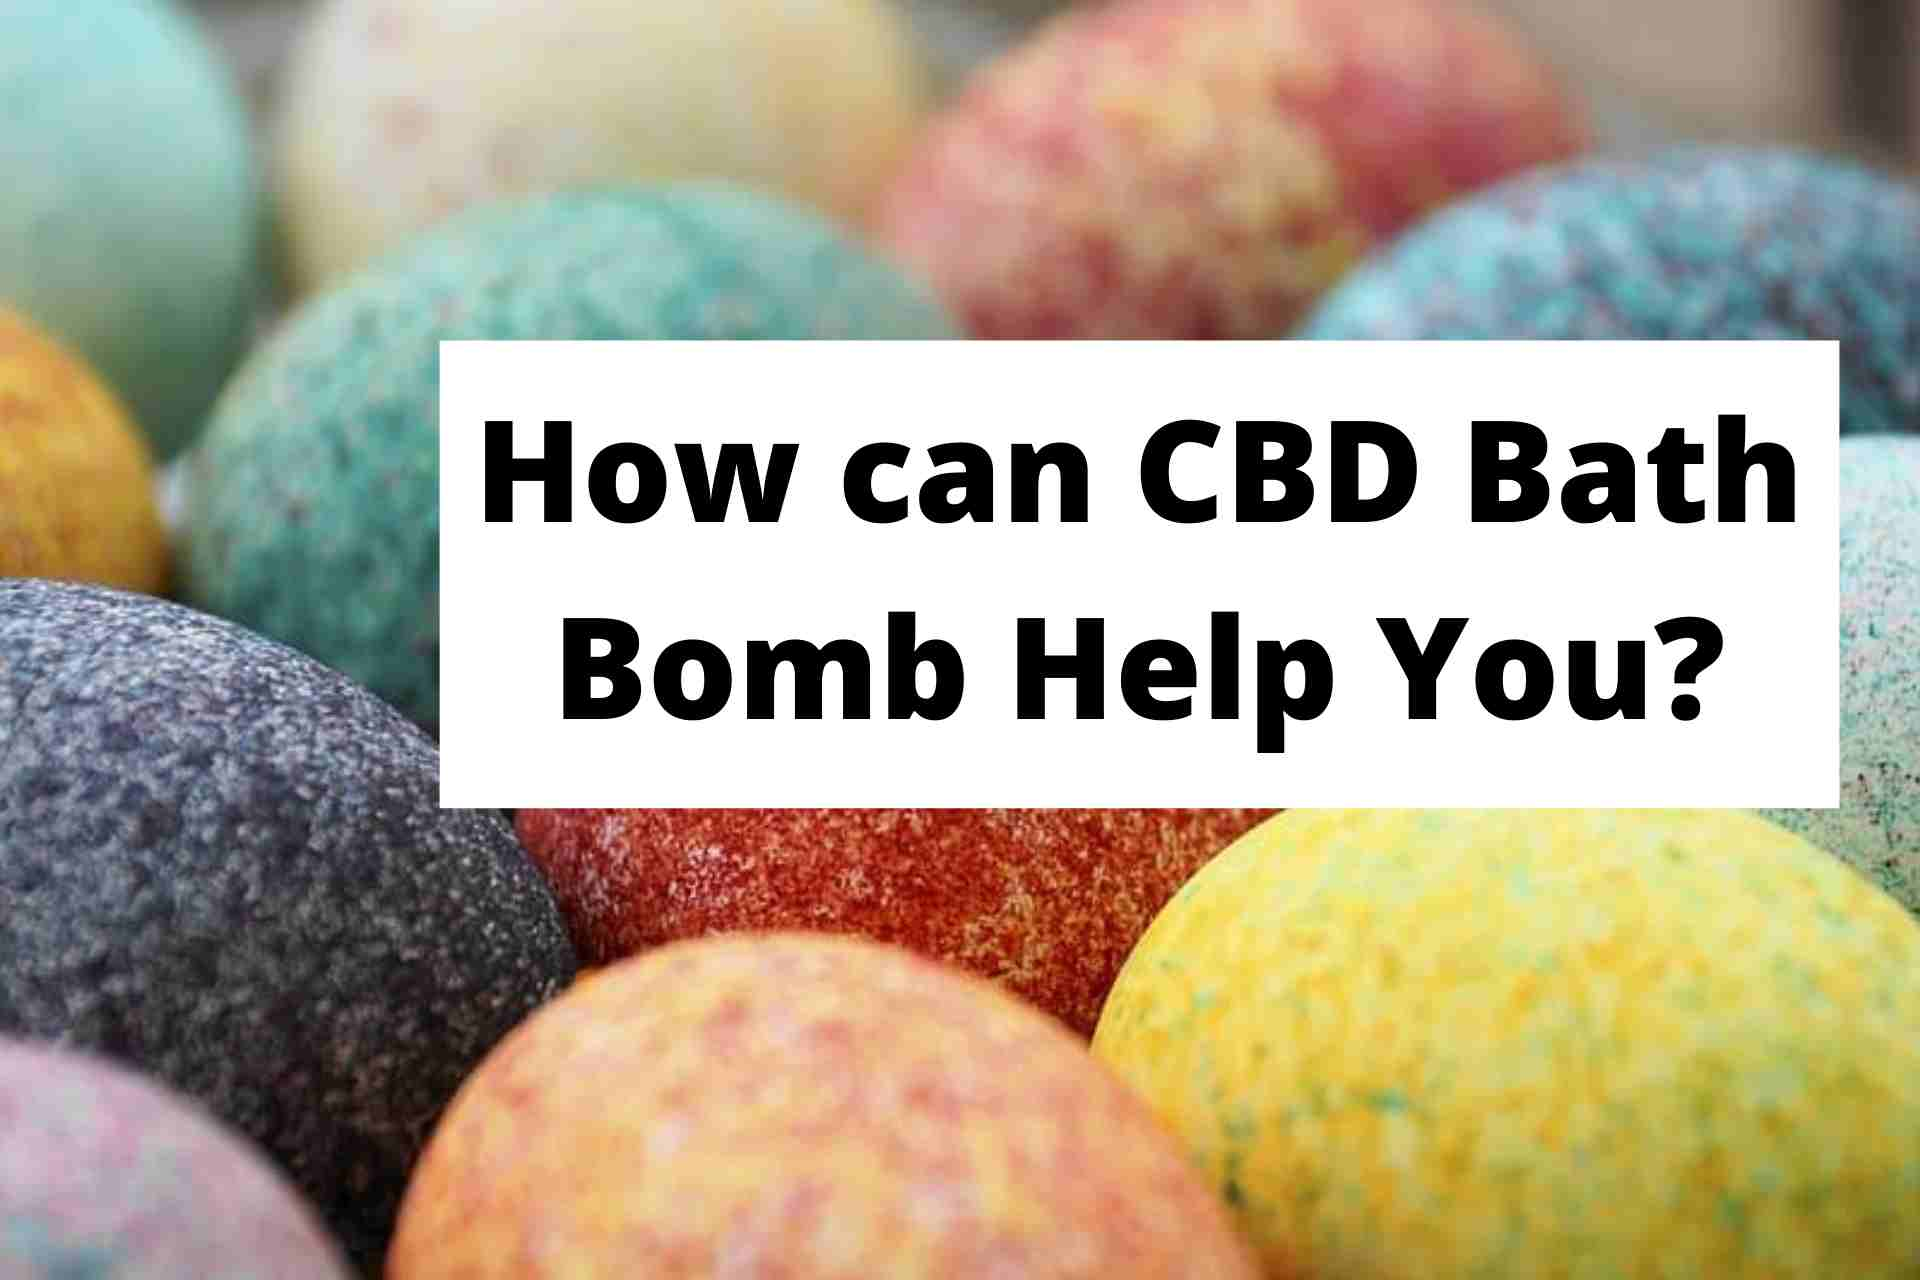 How can CBD Bath Bomb Help You?